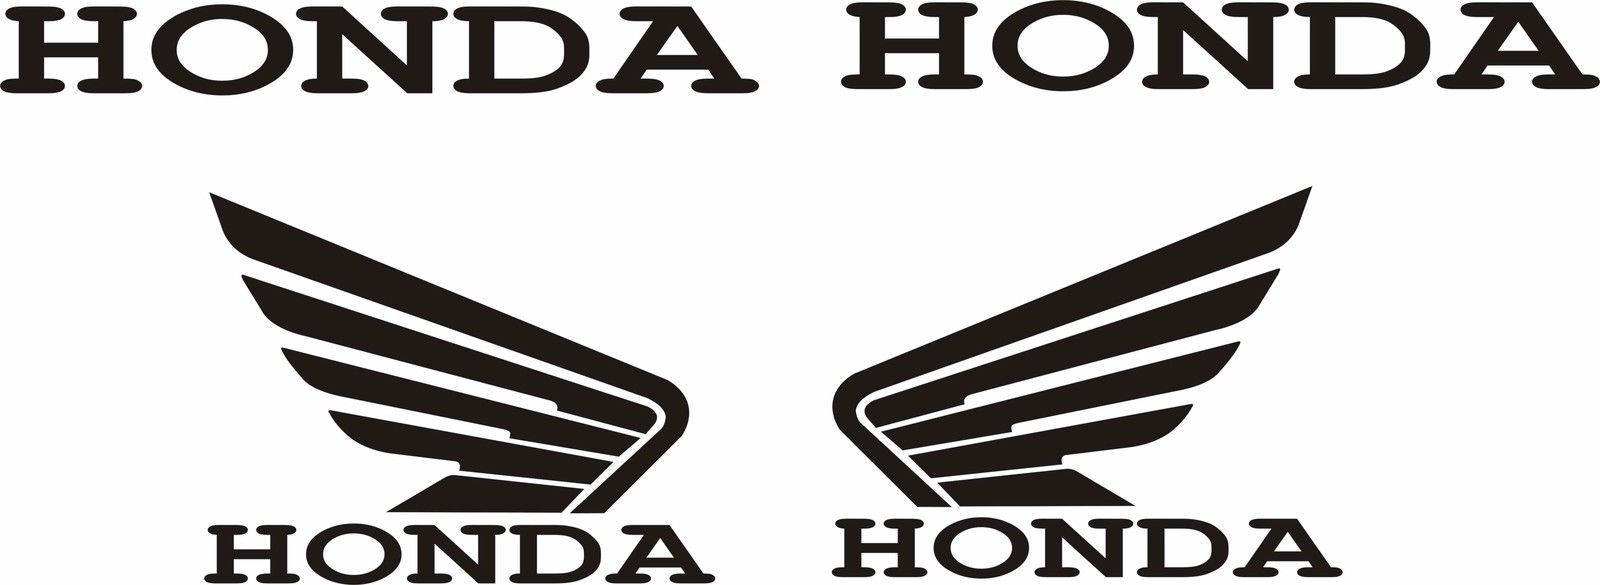 honda wings decals stickers motorcycle auto window custom sizes colors set of 4 honda. Black Bedroom Furniture Sets. Home Design Ideas